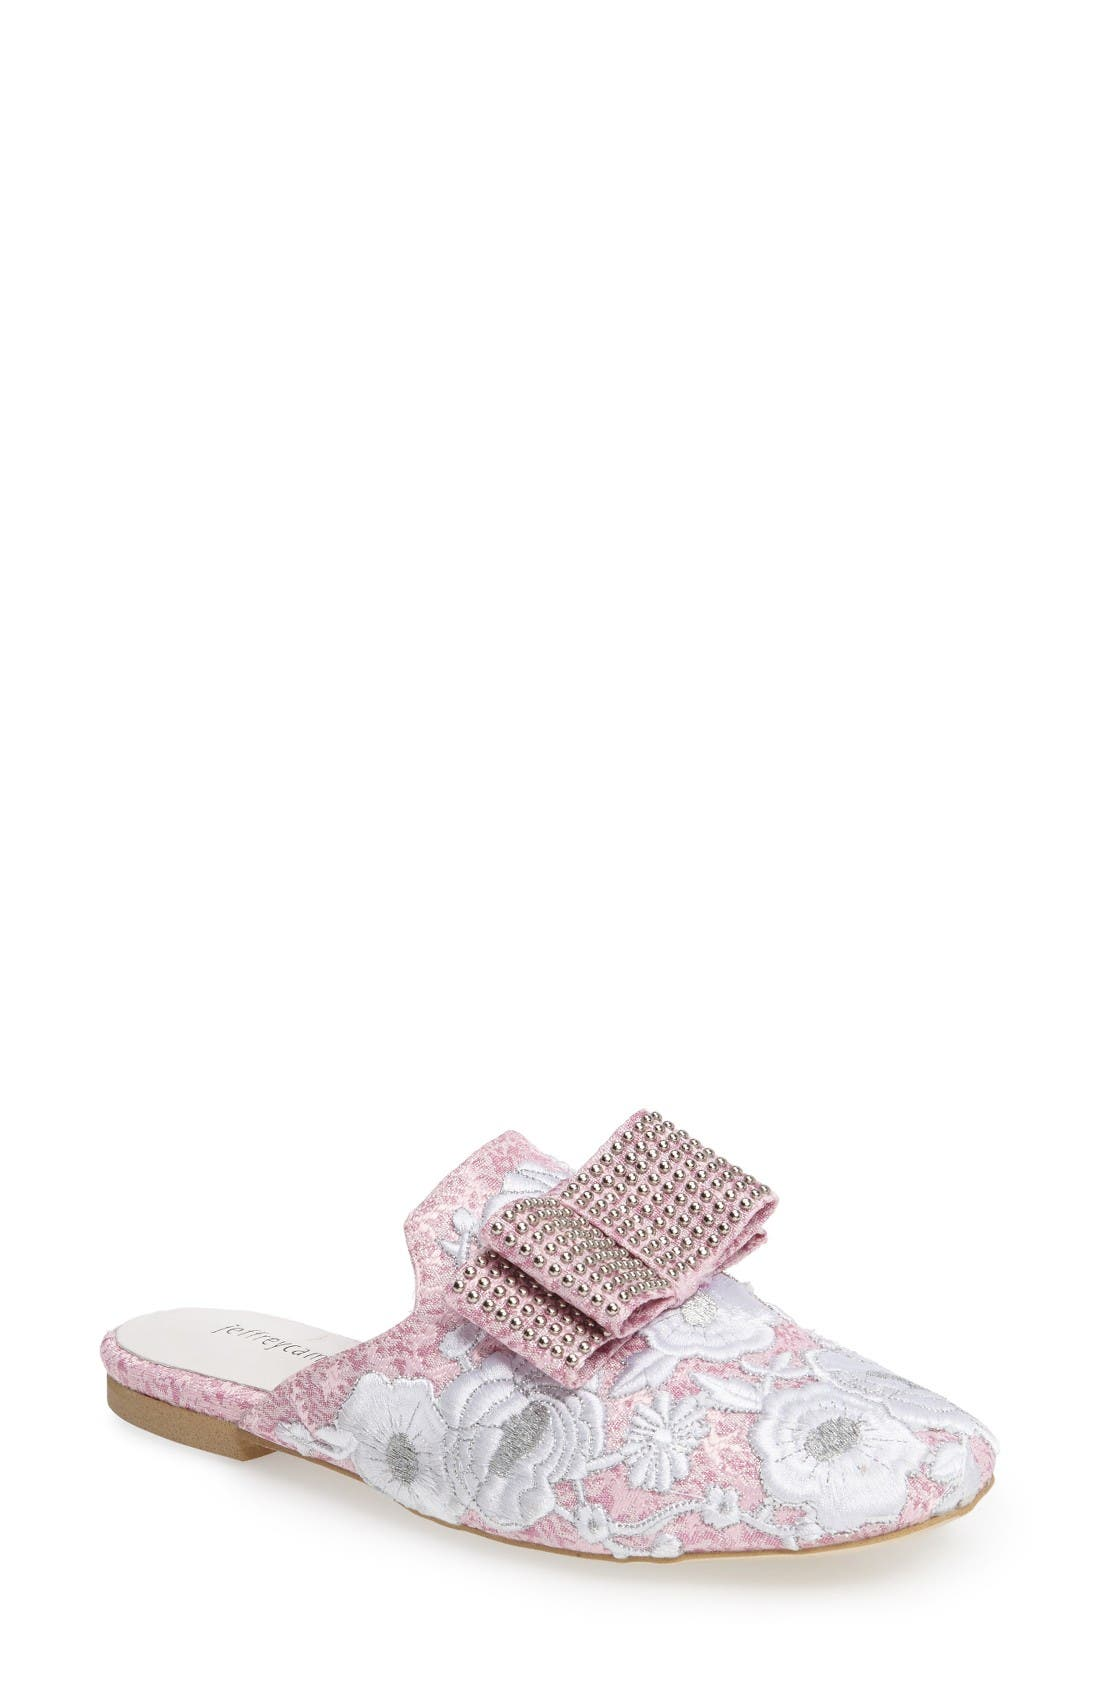 Main Image - Jeffrey Campbell Ravis Studded Loafer Mule (Women)